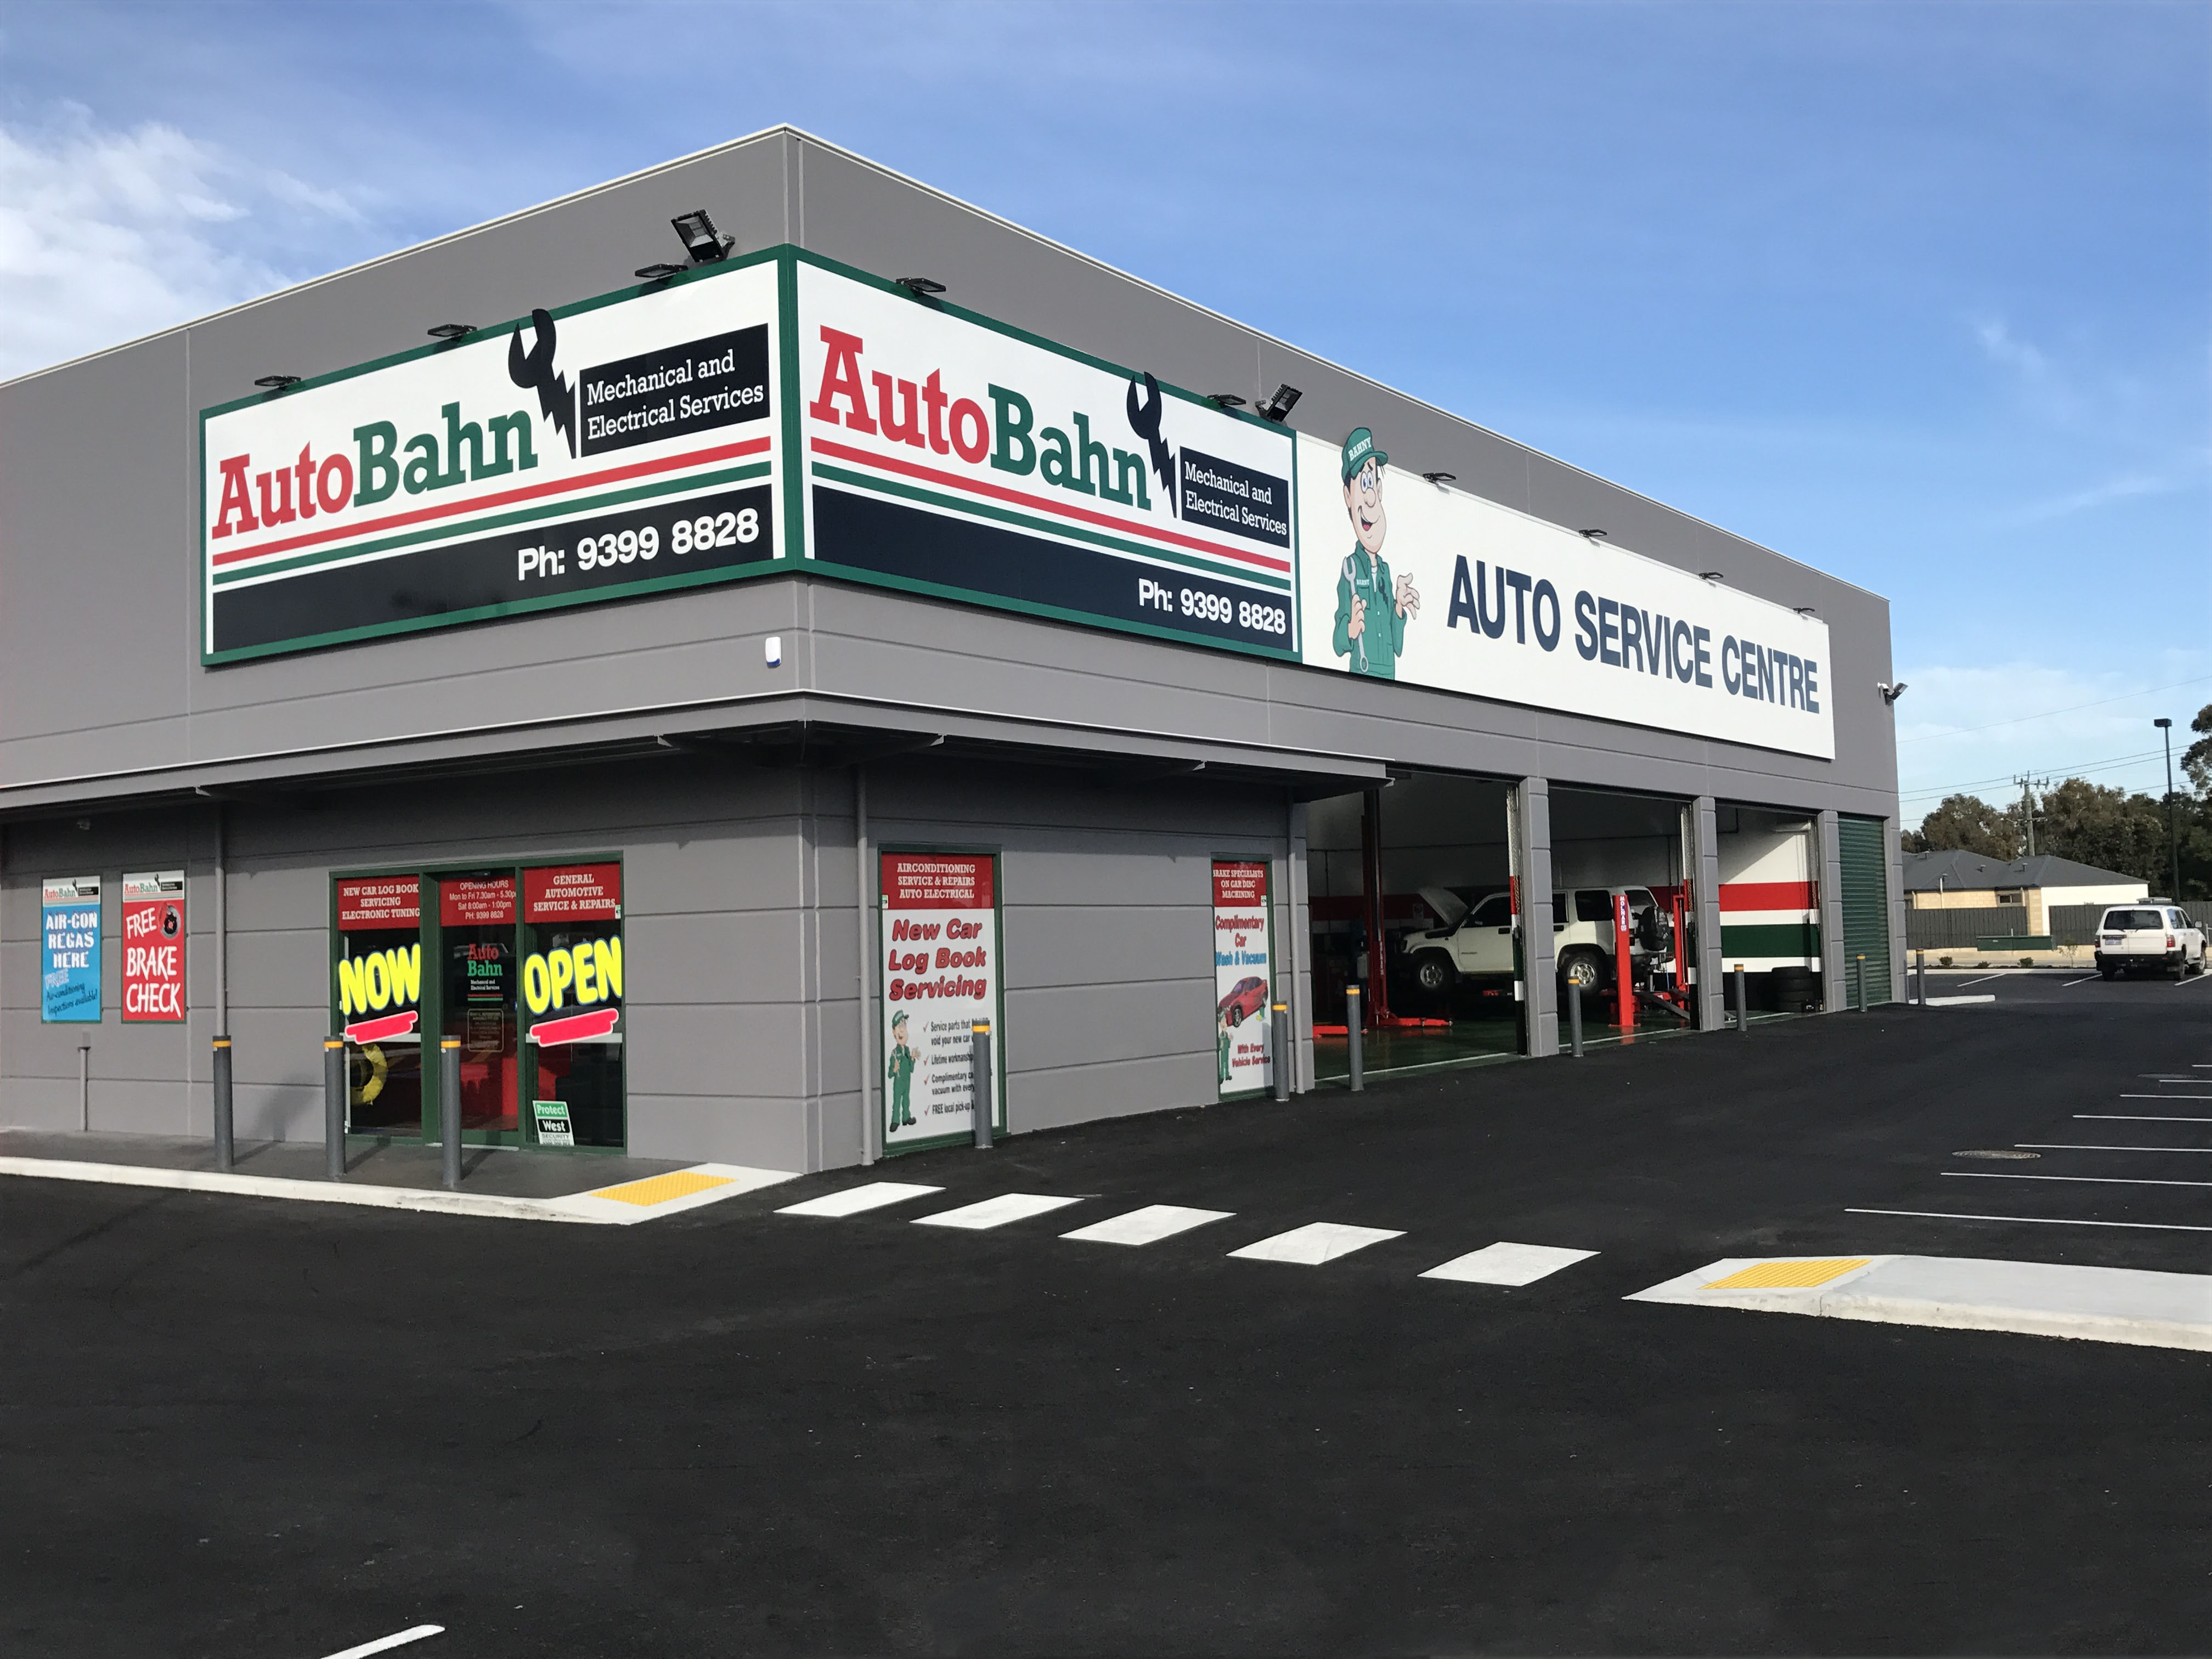 Autobahn Mechanical & Electrical Services - Armadale